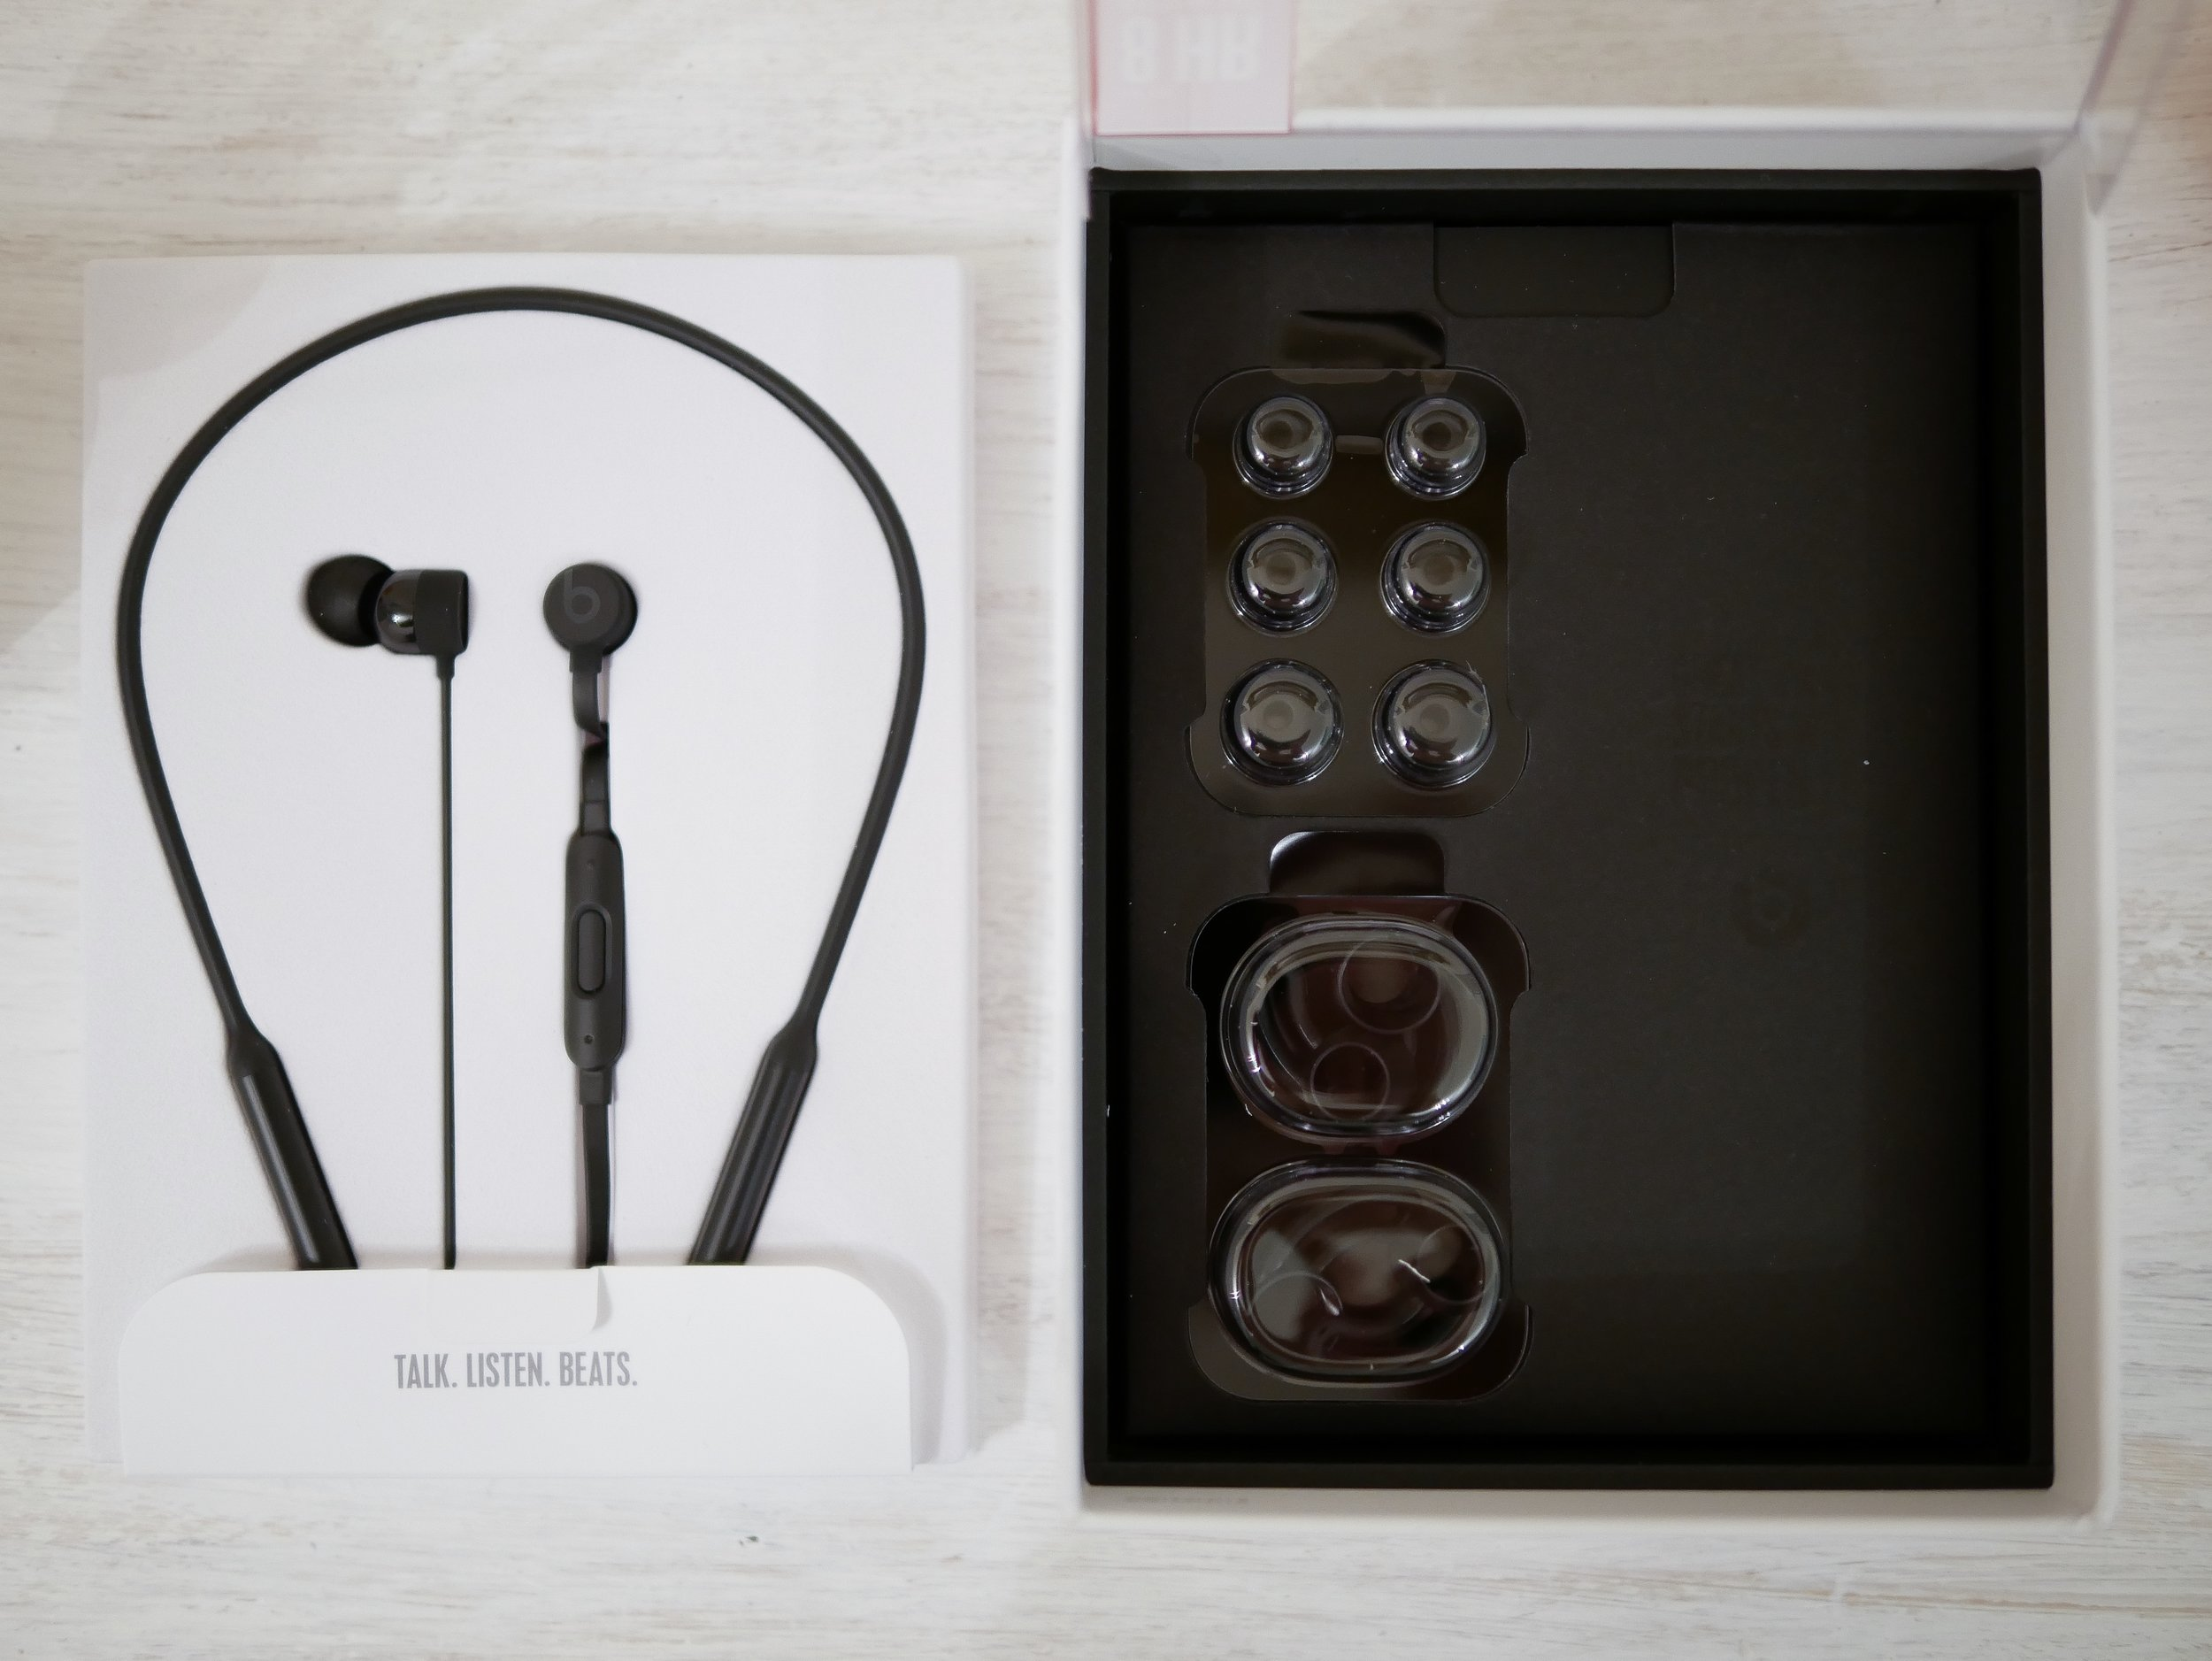 Beats x earbuds and accessories.